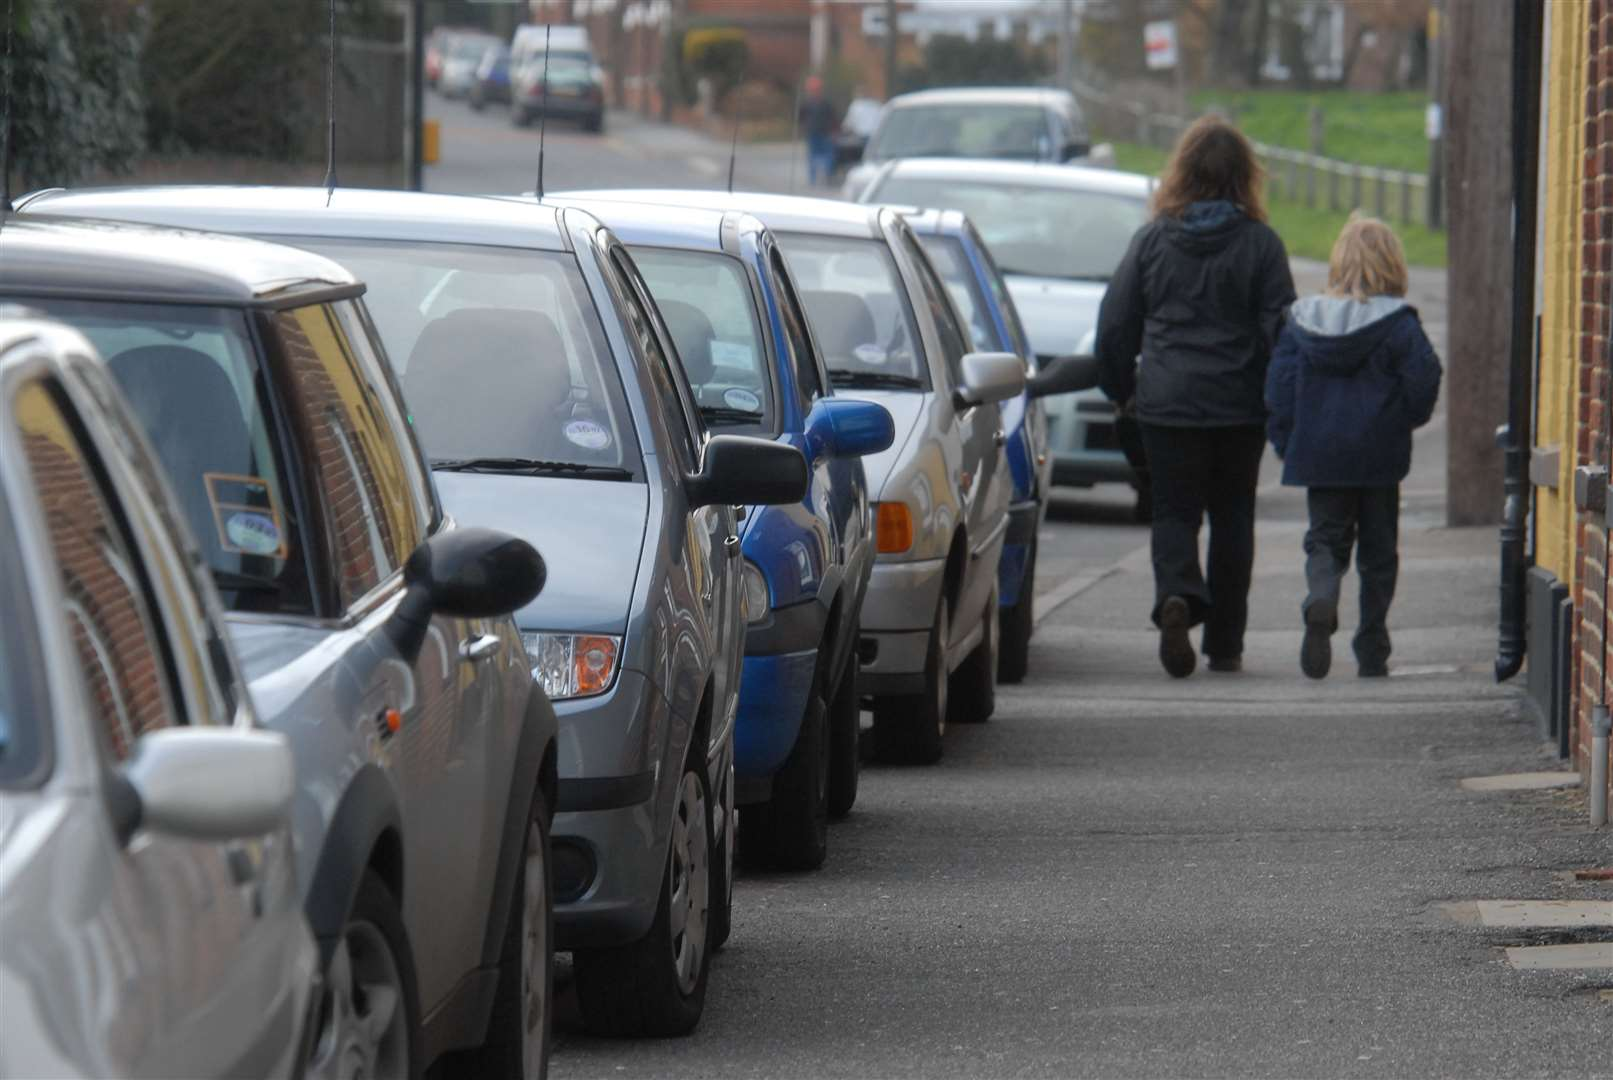 Research suggests cars are parked for, on average 23, hours a day